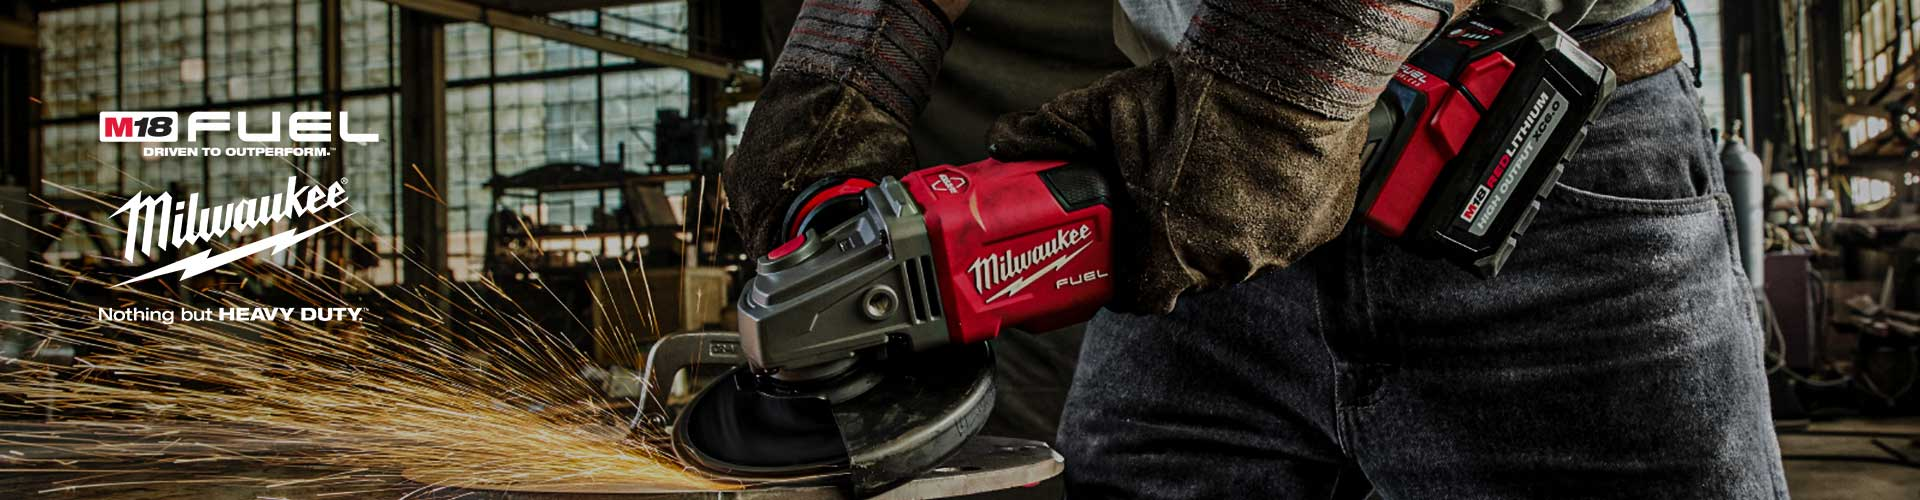 Milwaukee Tools Online Shop